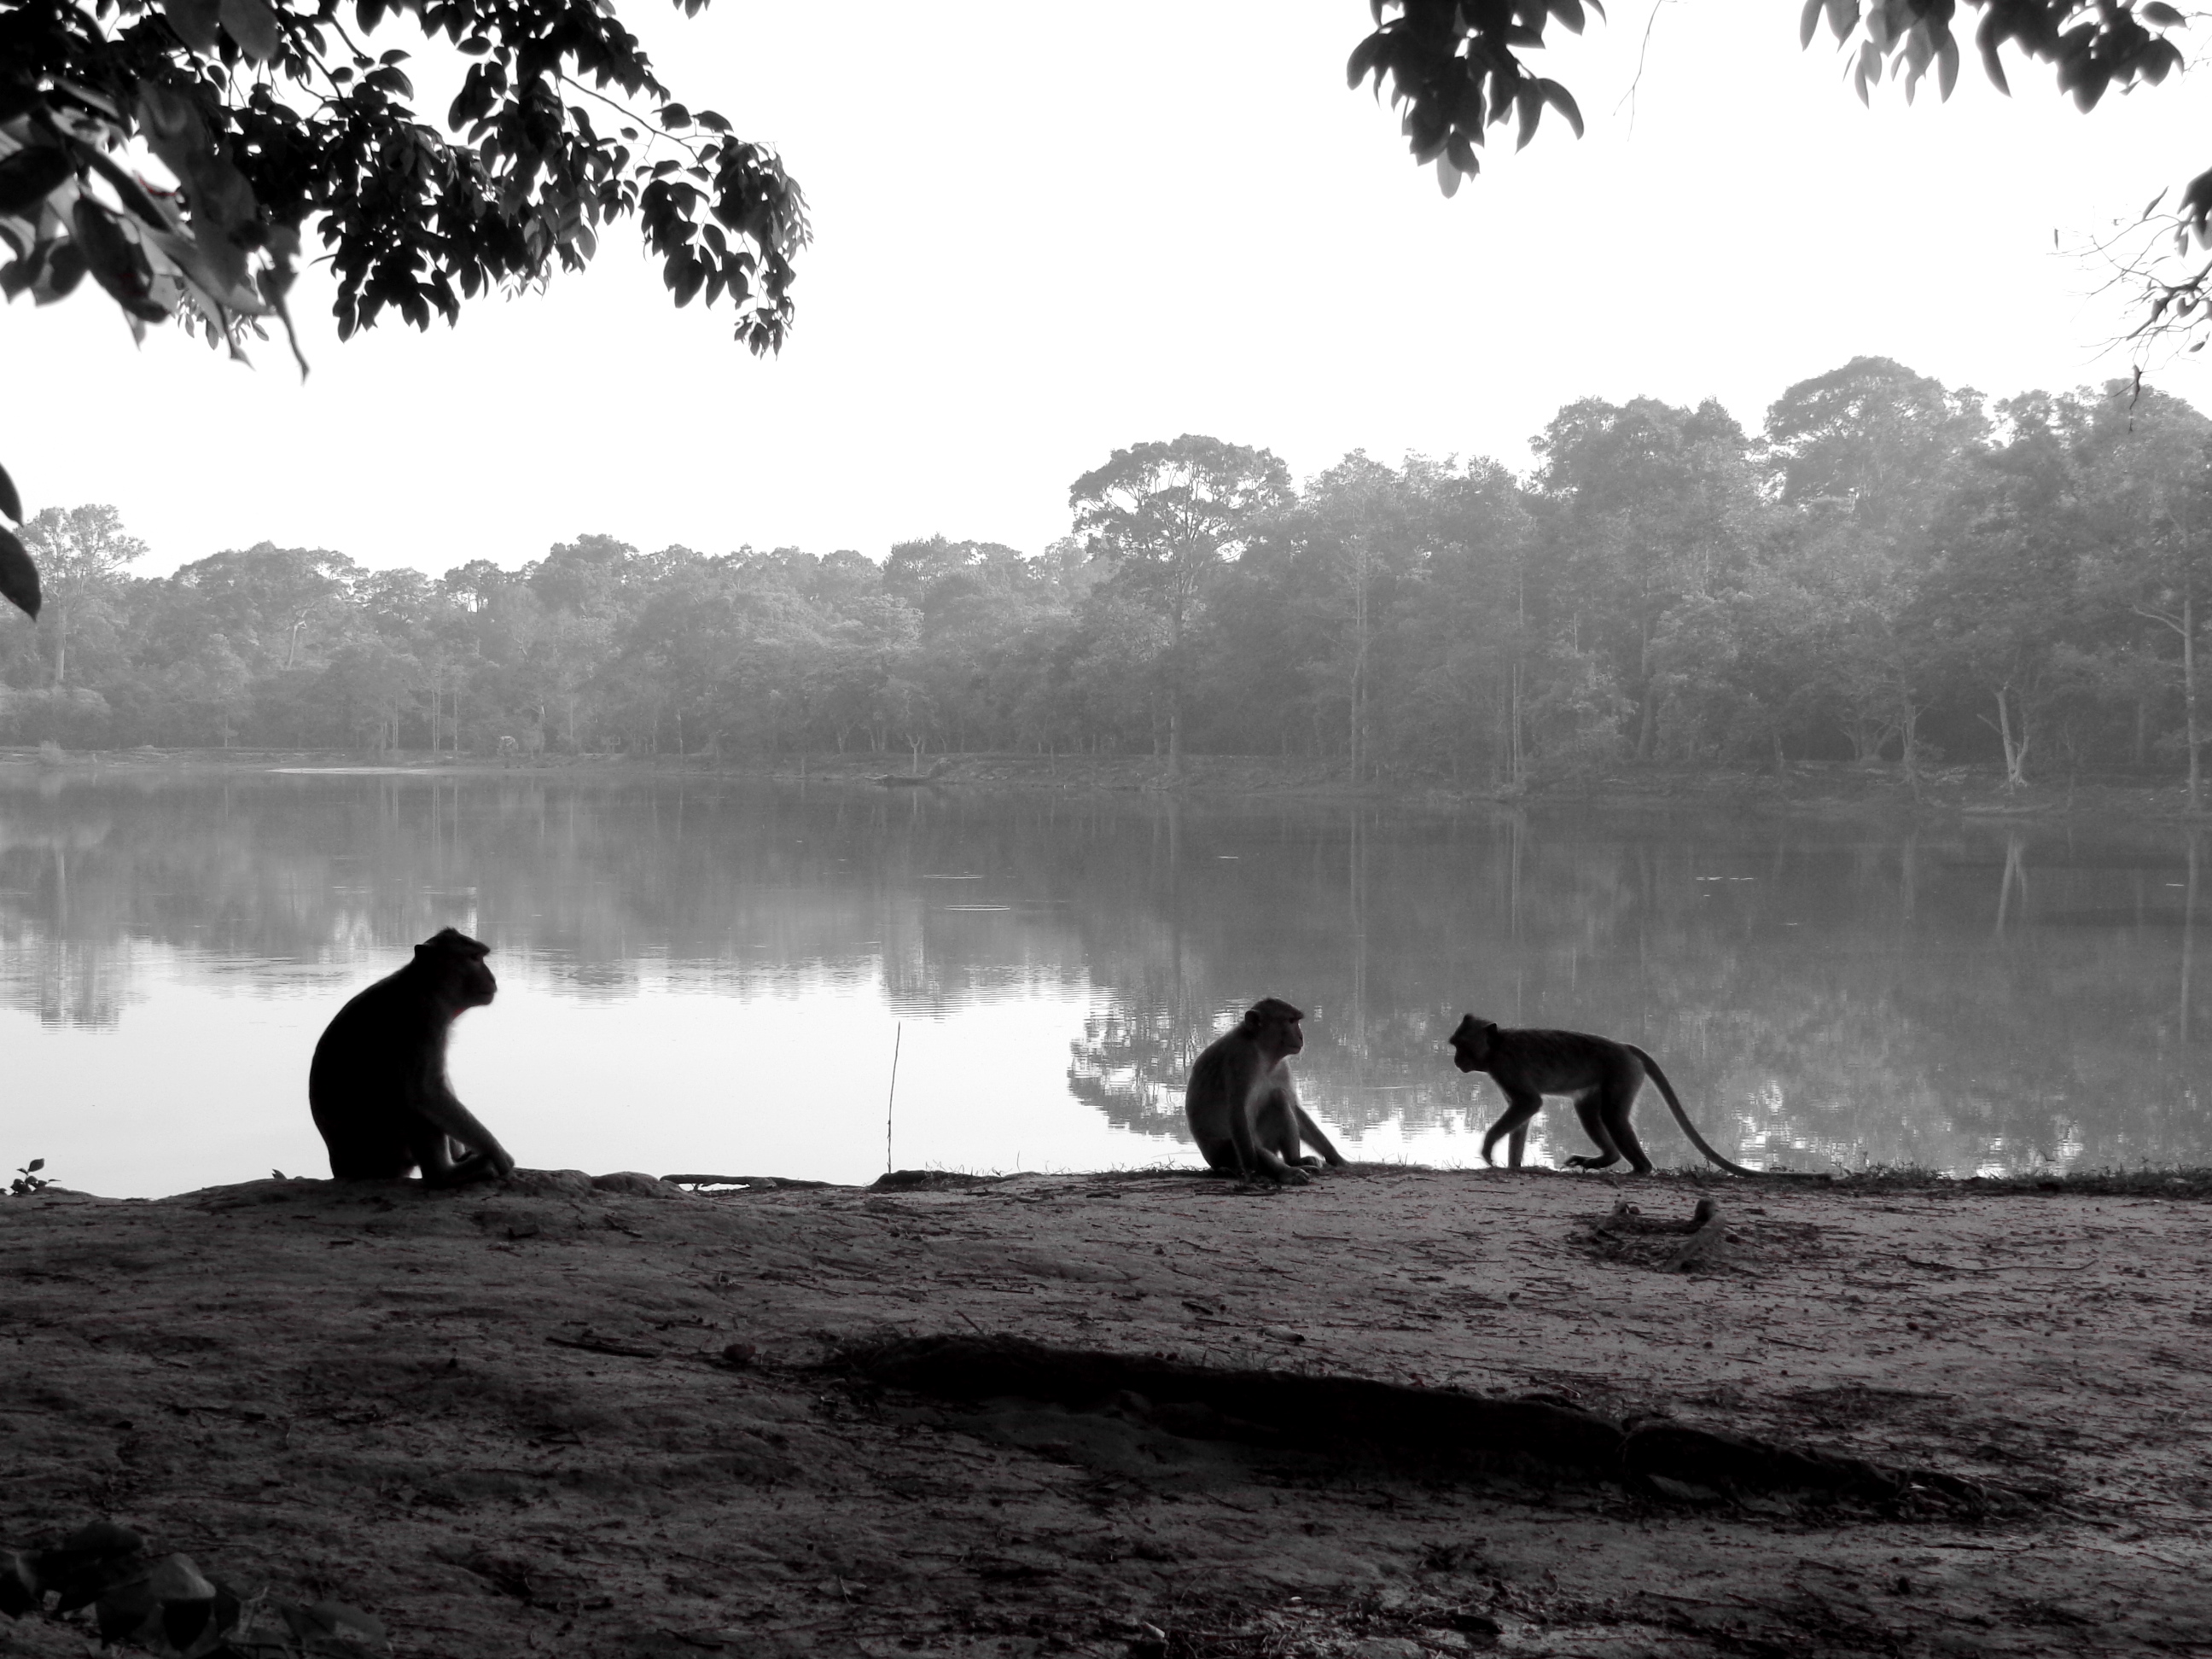 Monkeys in Angkor Wat in Cambodia